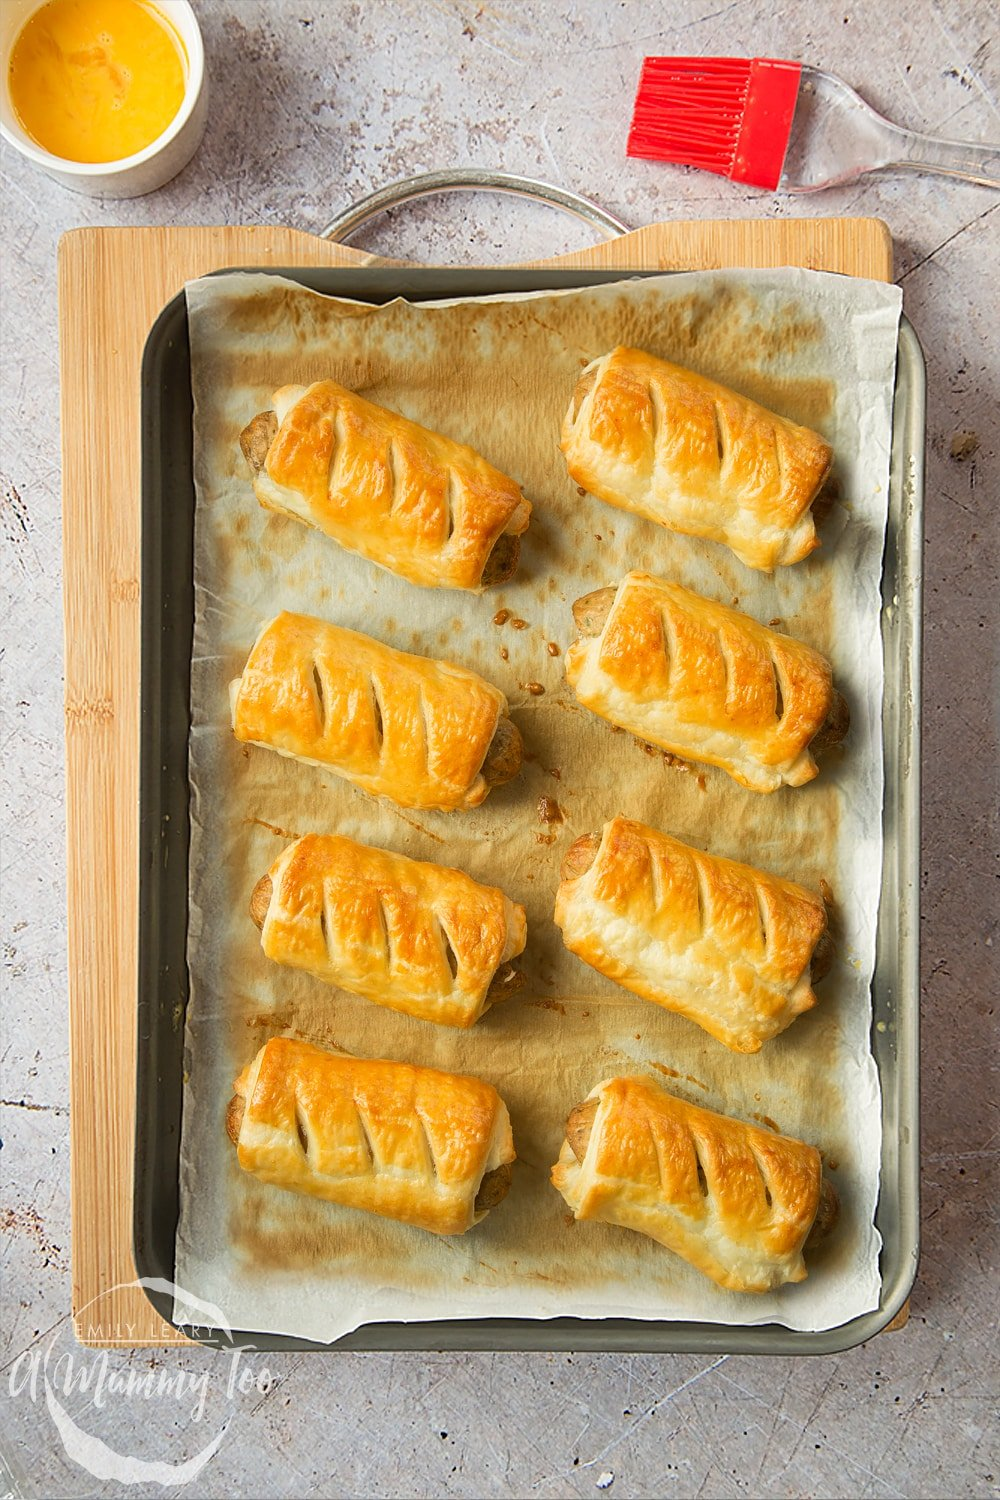 Vegetarian sausage rolls on a baking tray, freshly cooked.